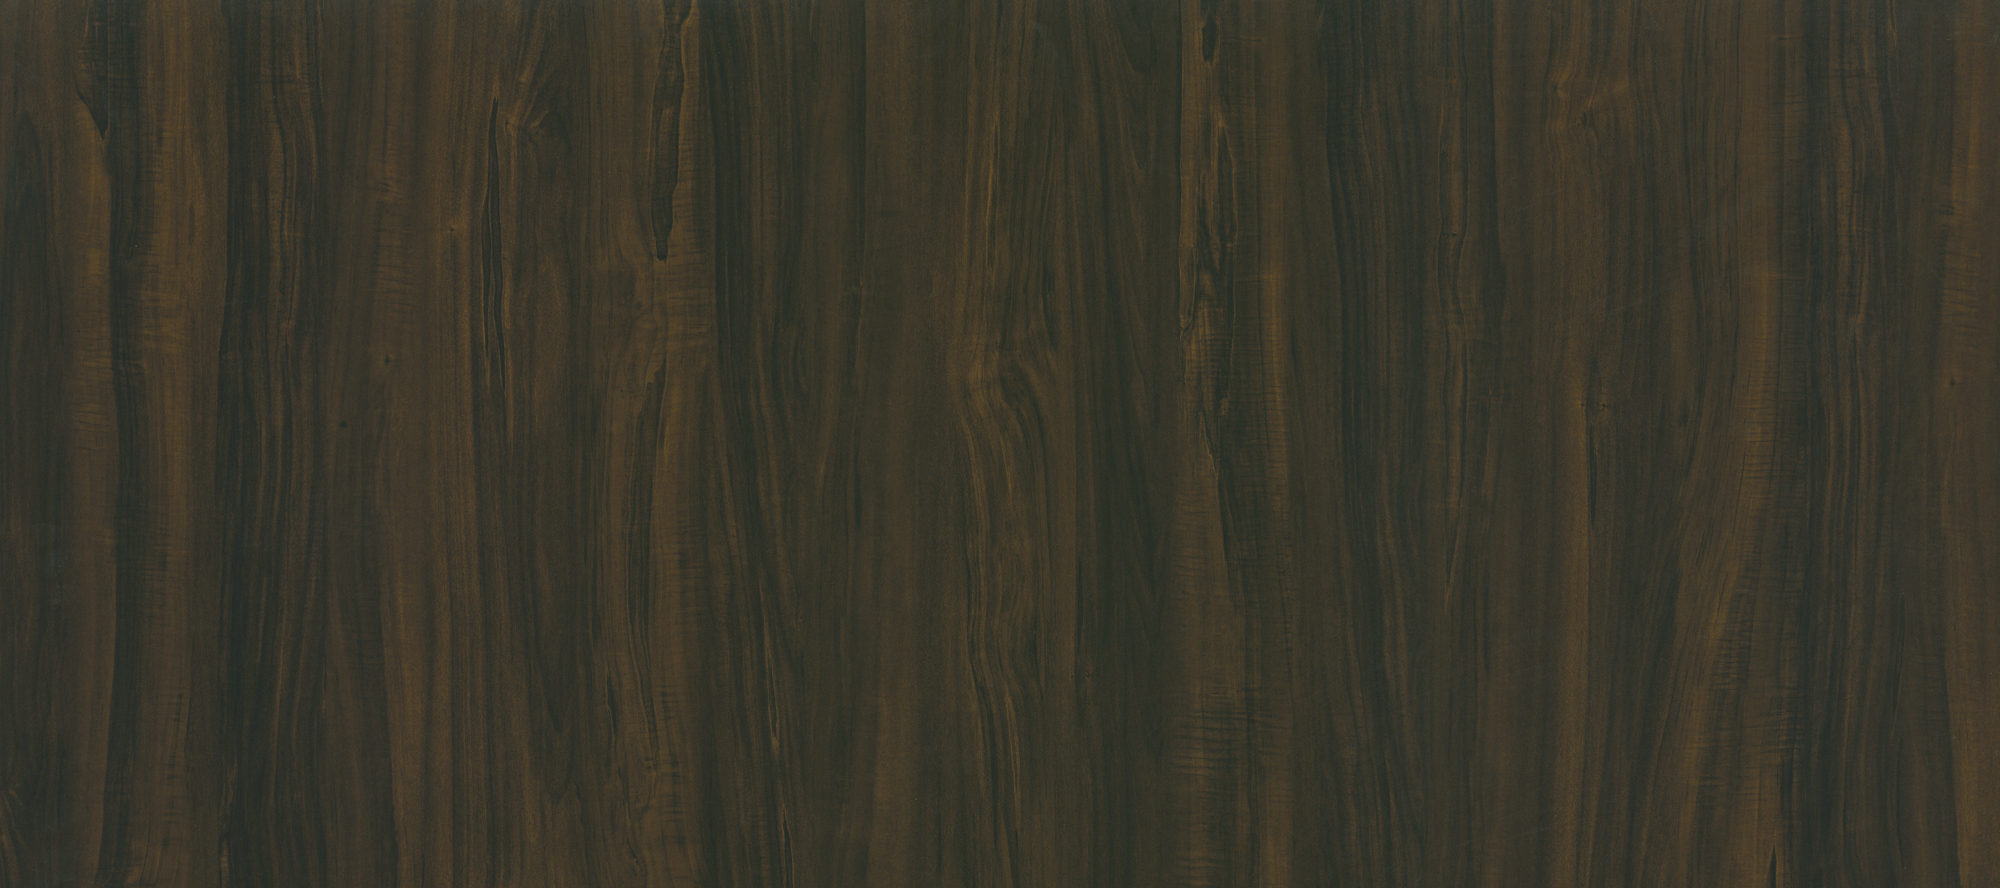 1MM international, South Supreme Laminate Design For Bedroom Wardrobe-Sundek International